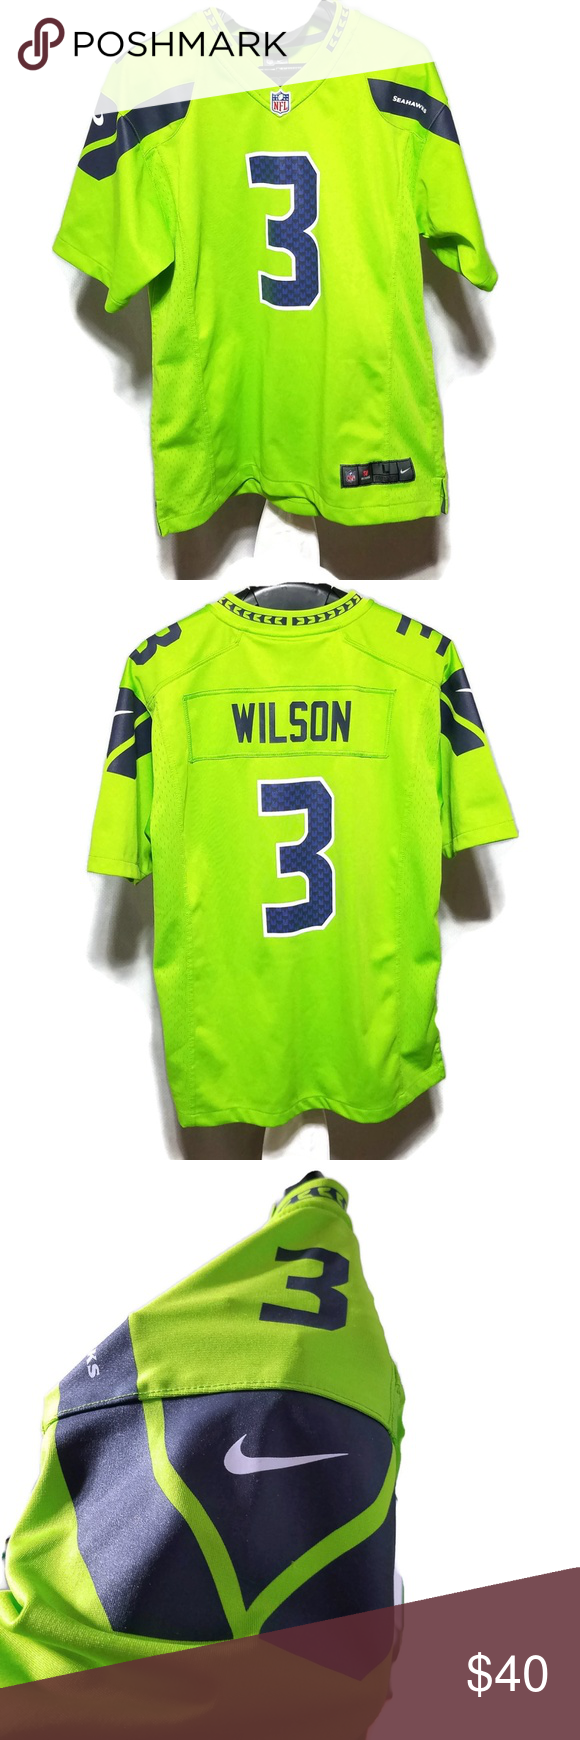 outlet store 23b39 eca74 Seahawks Wilson #3 Color Rush Green Jersey EUC Seattle ...